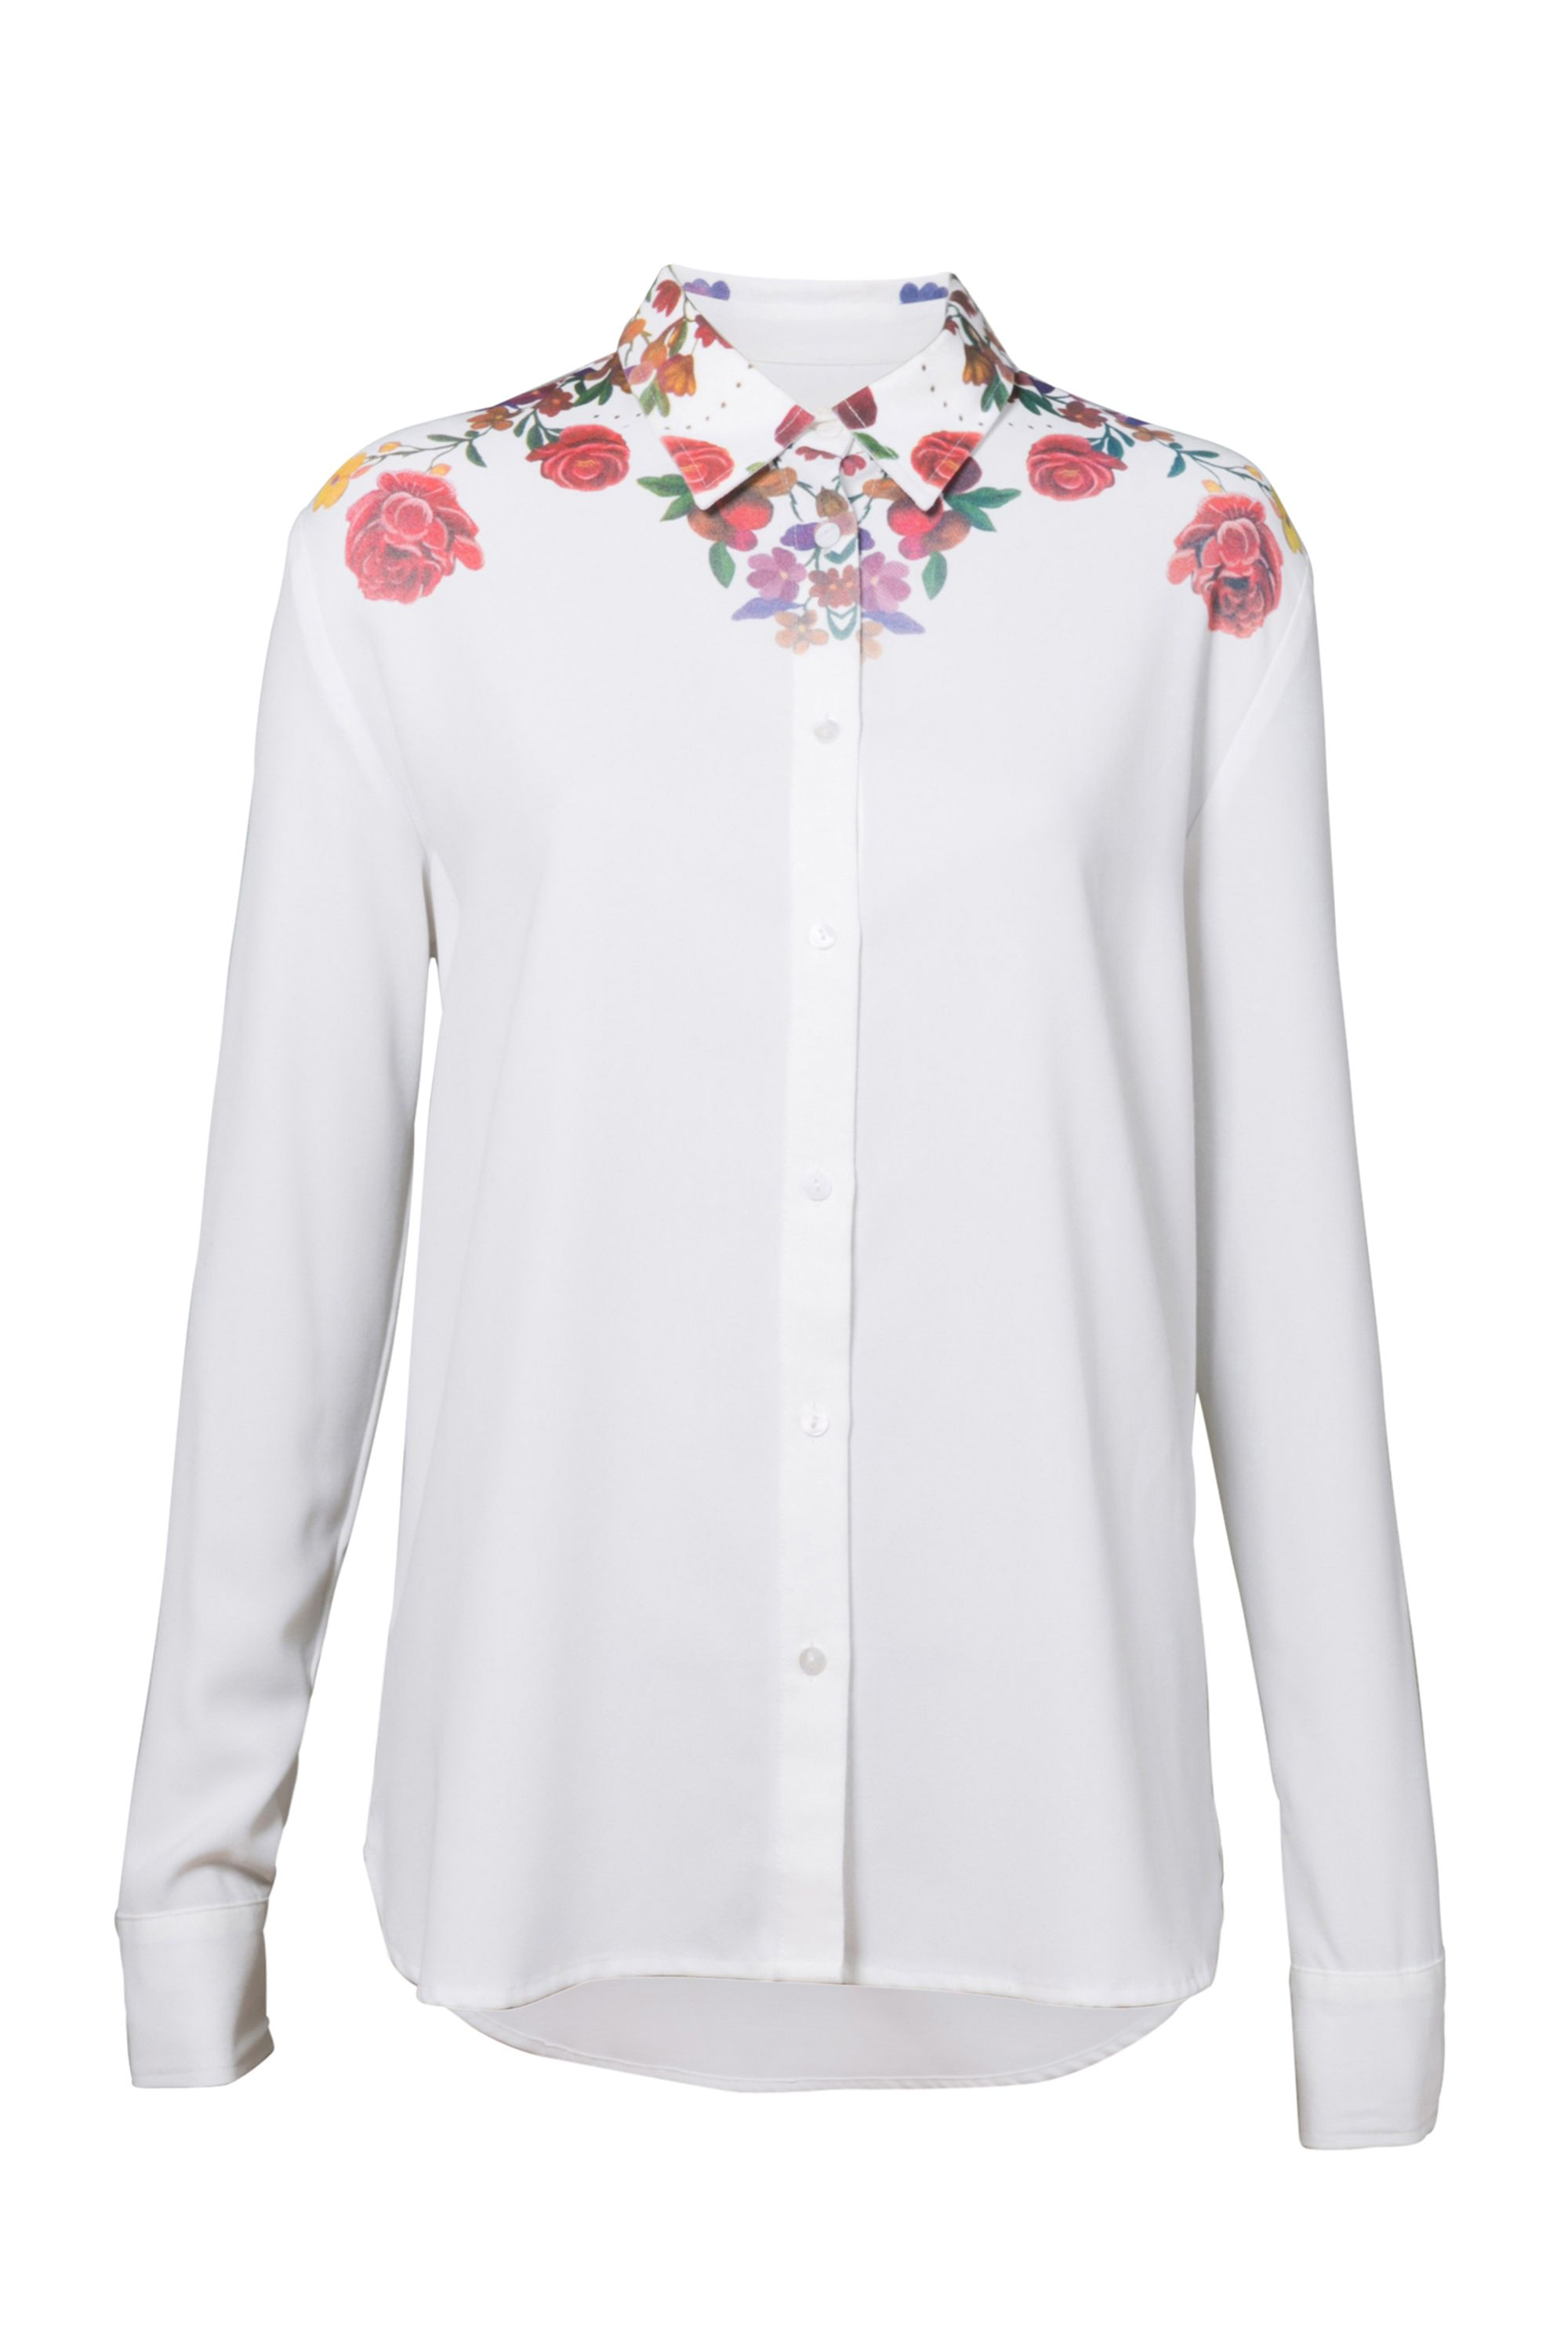 Desigual T-Shirt Yes, White